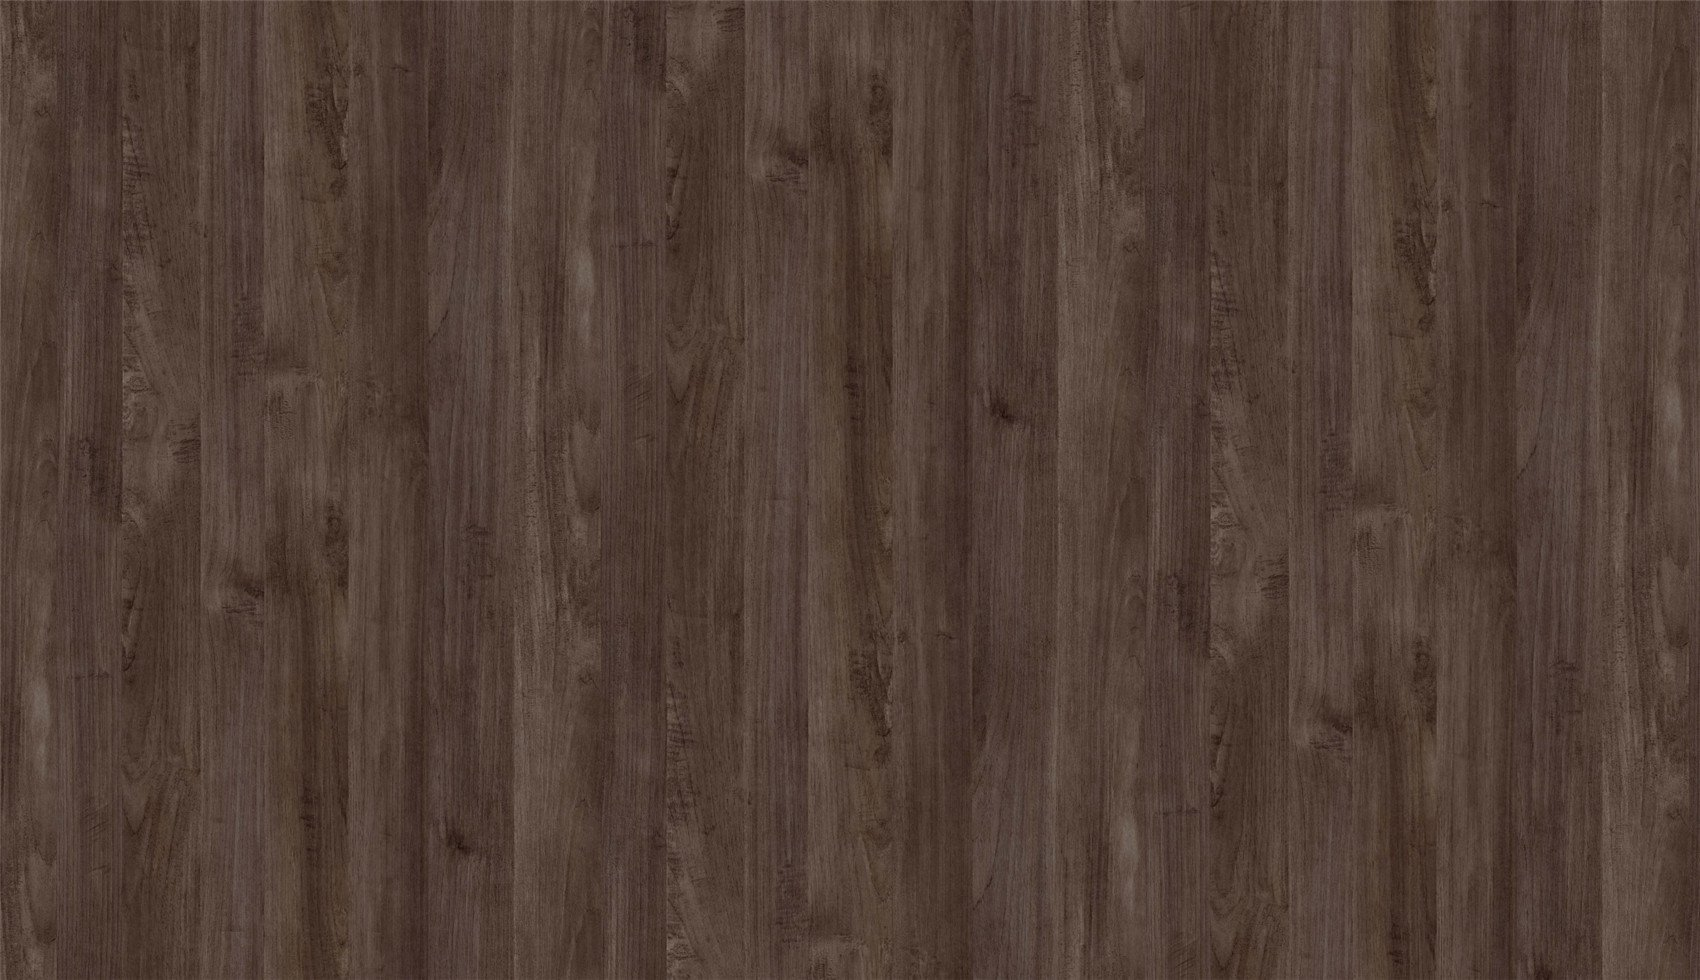 78209  idecor decor paper oak up to 7ft